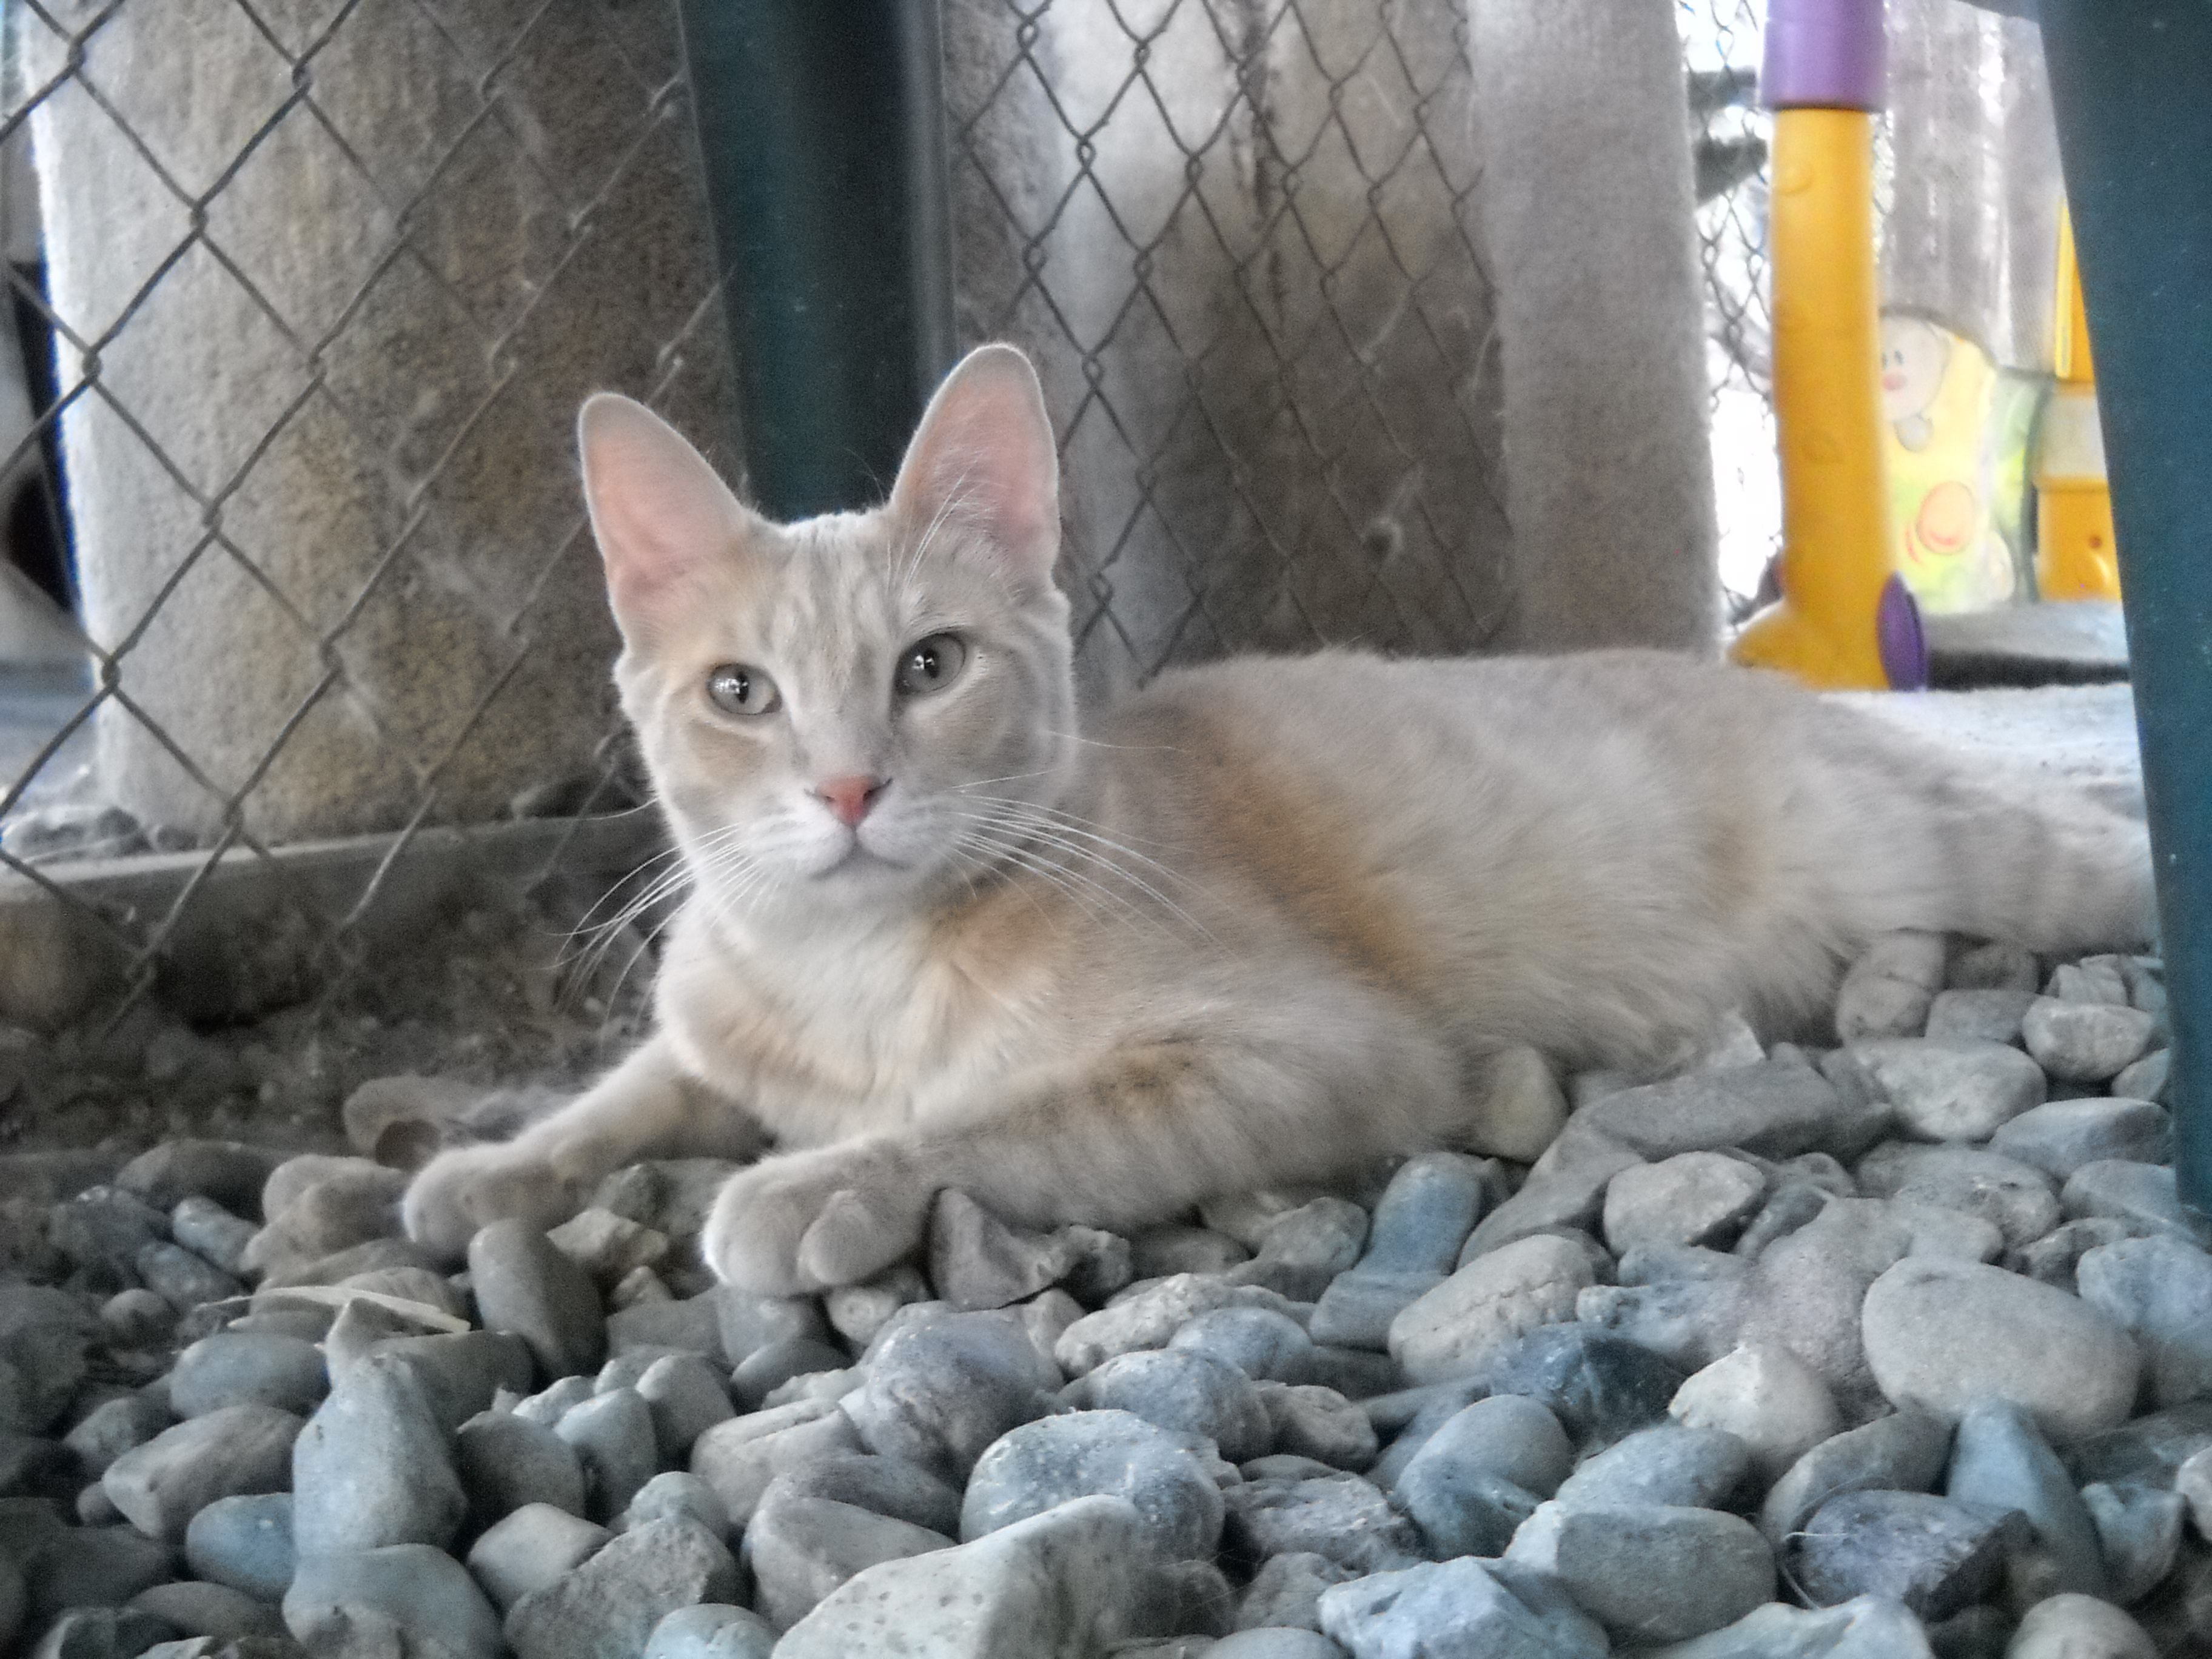 Pretzel Is 1 Year Old Cat With A Dilute Ivory Orange Short Tabby Coat He Has The Fun Energy Of A Kitten And A Very Social Raining Cats And Dogs Pets Old Cats